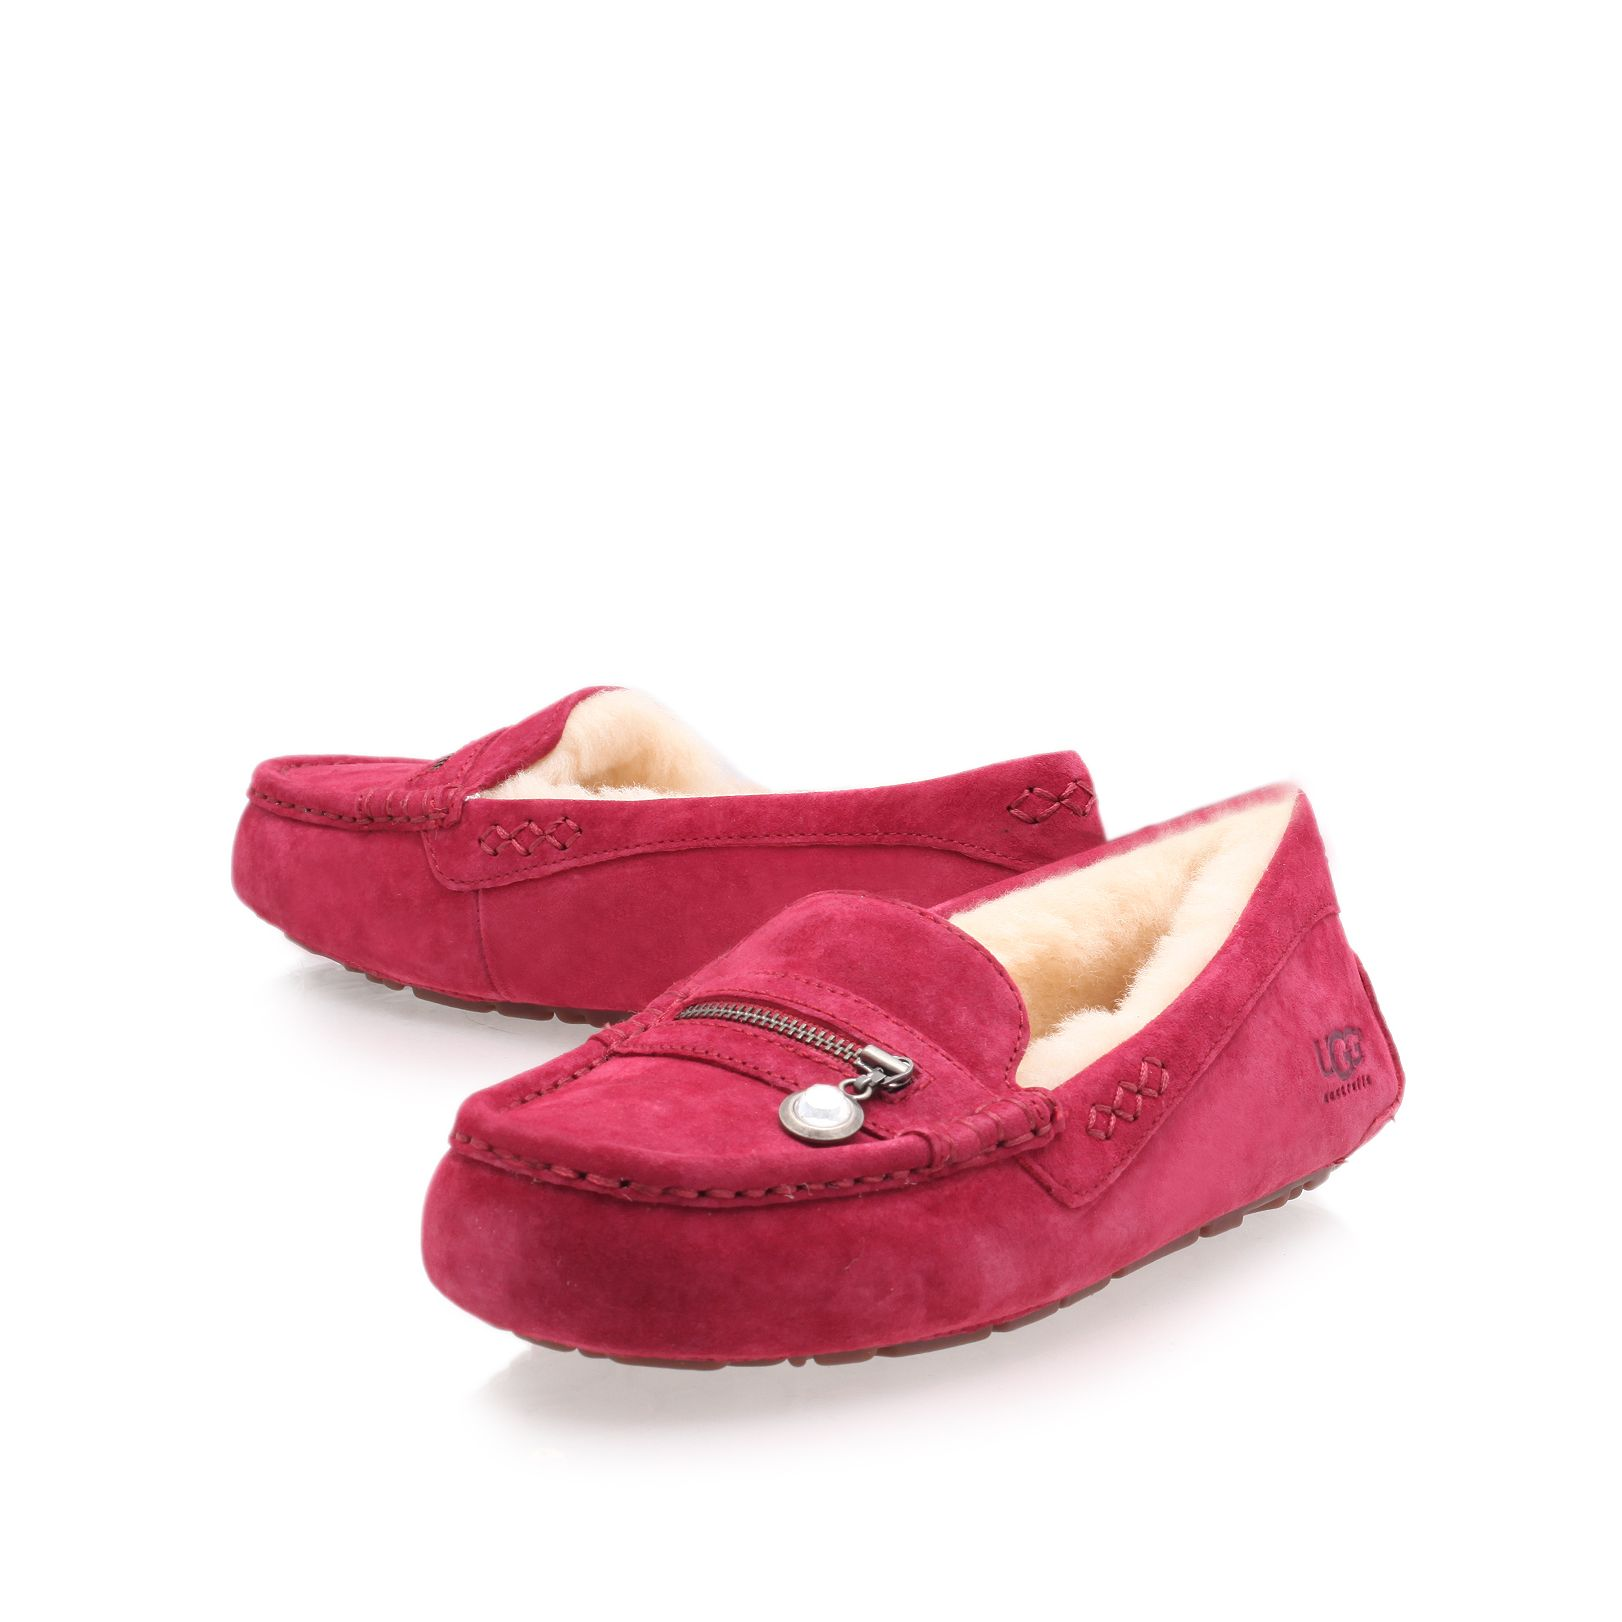 Ansley charm slippper shoes